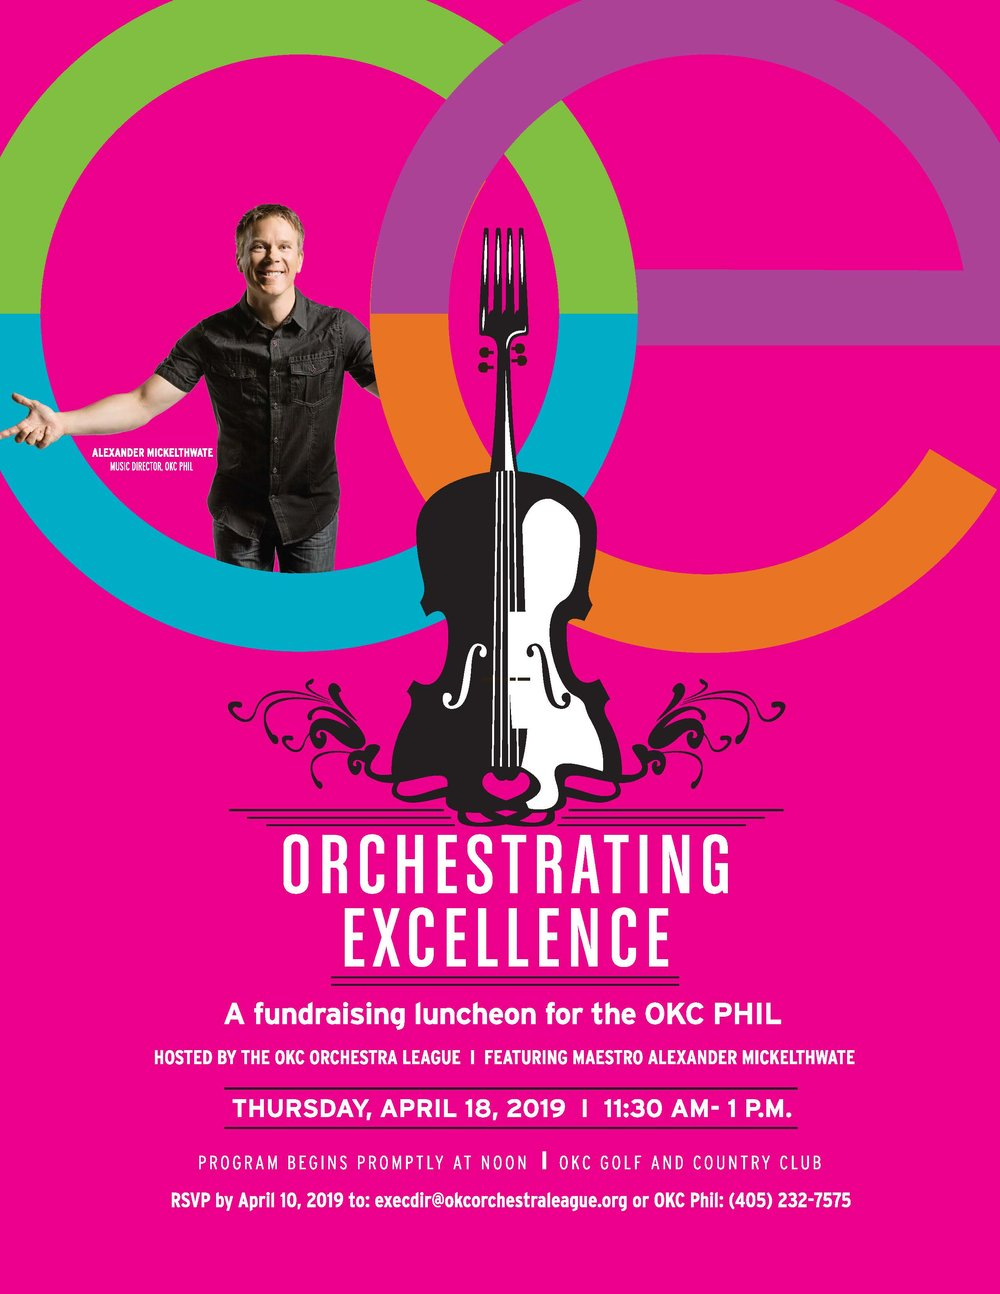 Invitation-Orchestrating Excellence Lunch.jpg